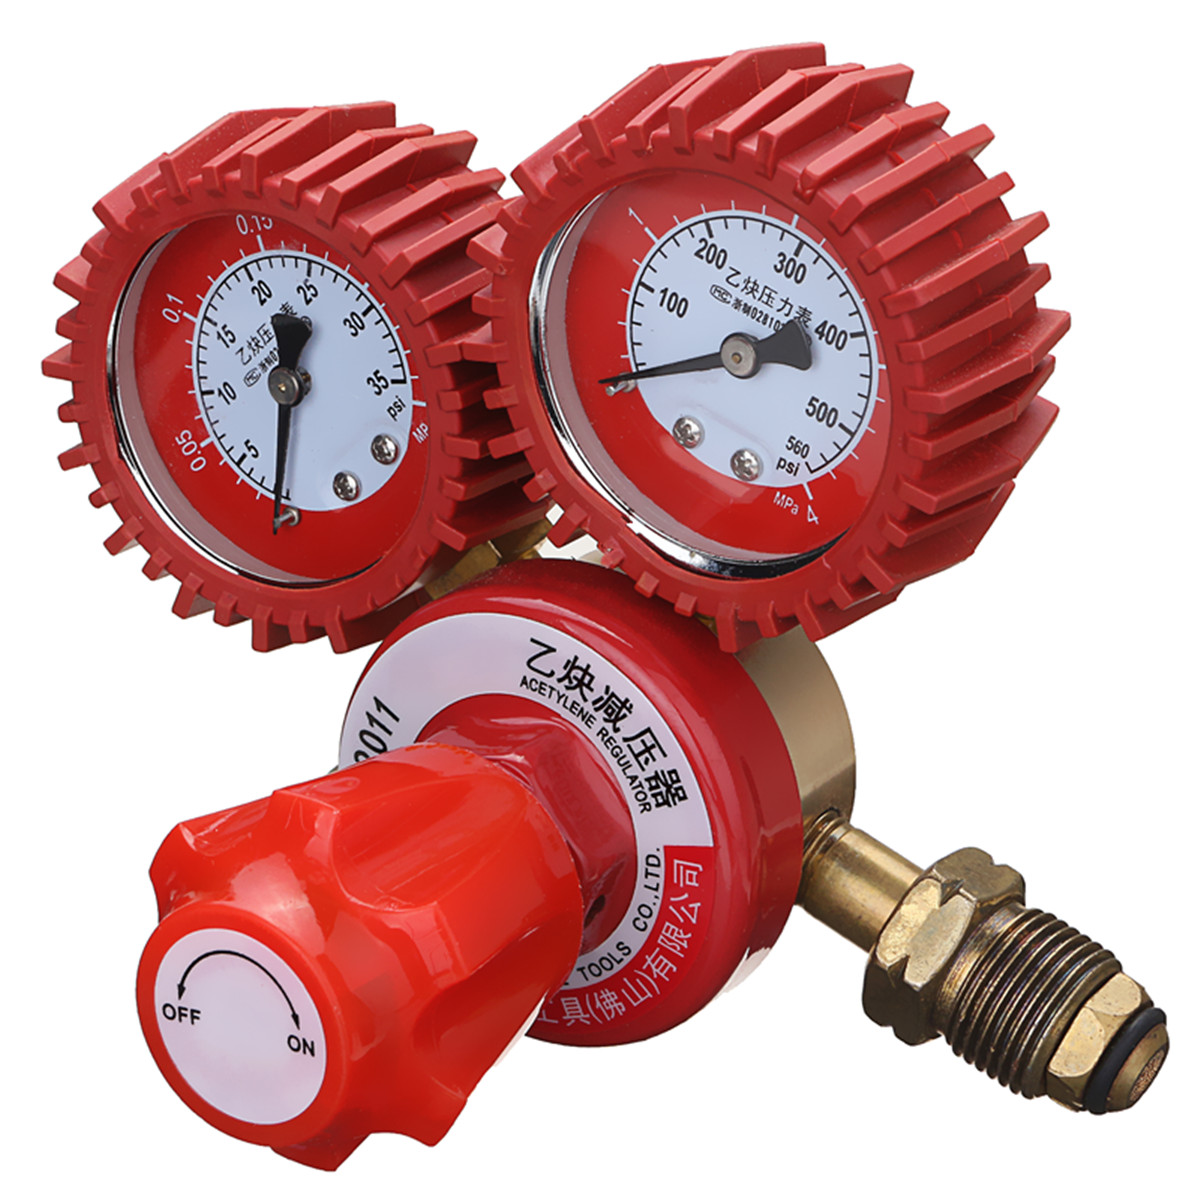 2 Gauge Acetylene Gas Regulator 0-4MPA Single Stage Welding Burning Cutting 5/8